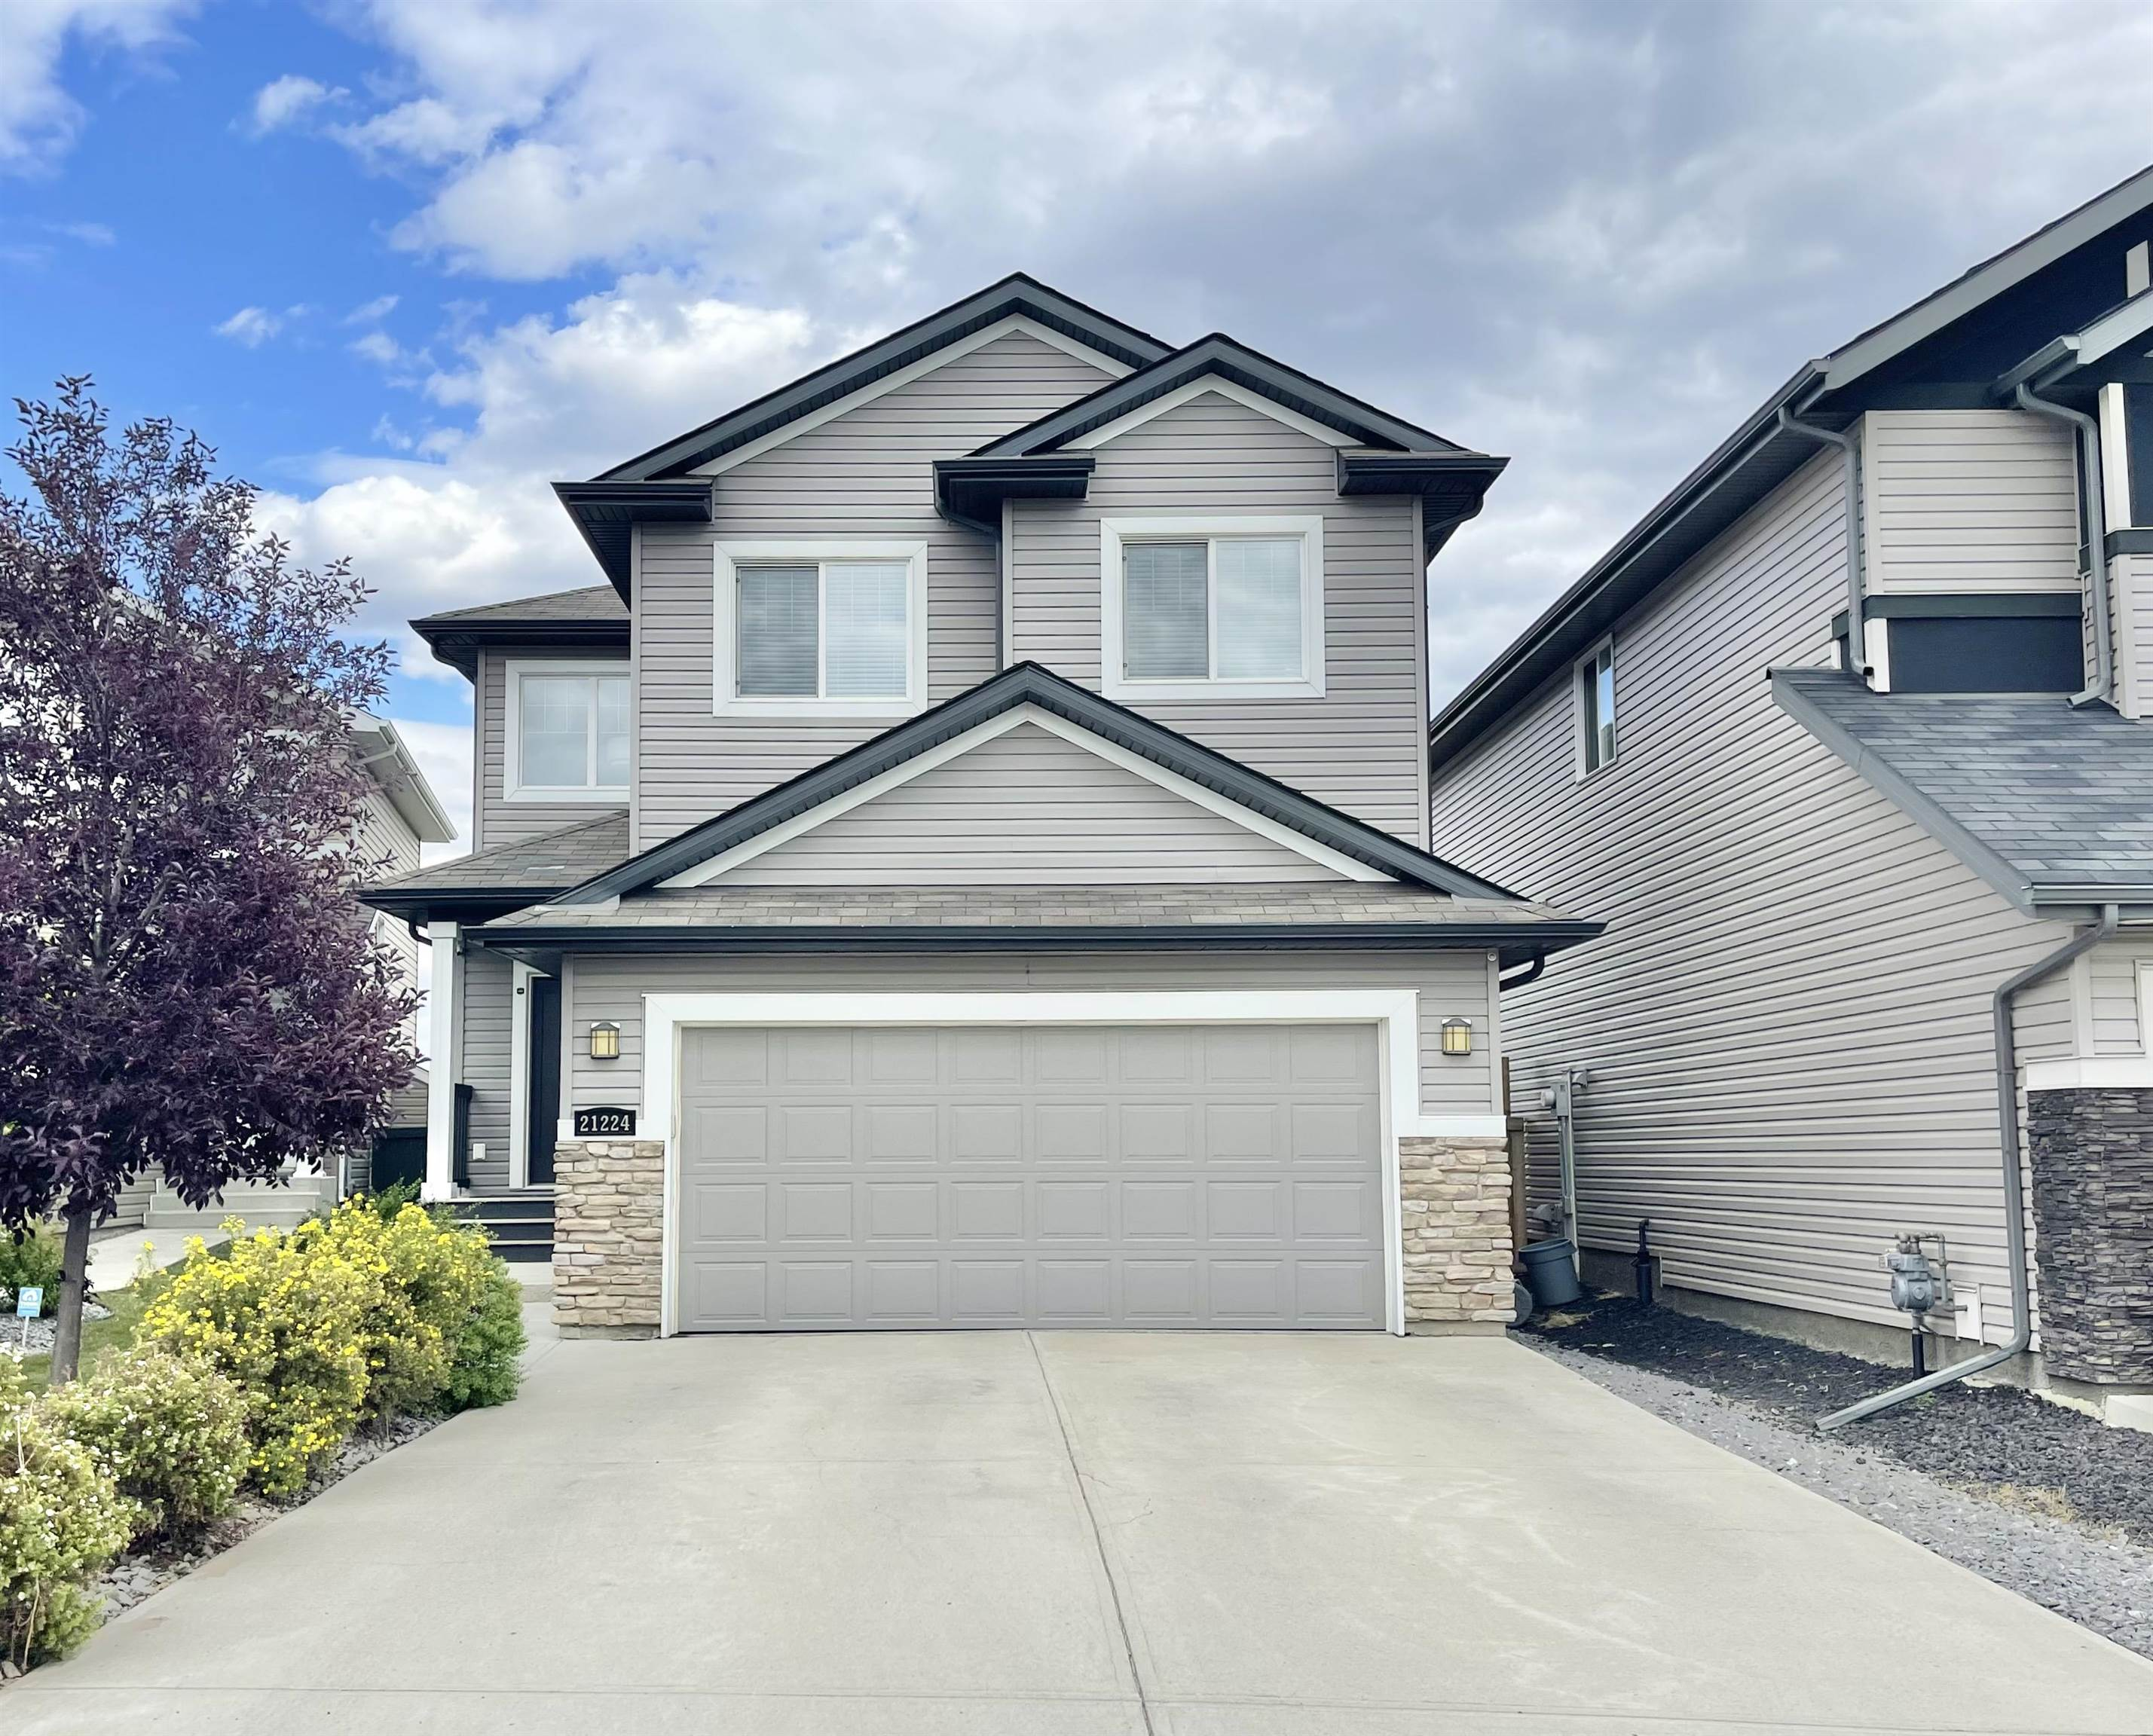 Welcome home to this 2189sf former show-home built by Looke Homes! Nestled in a quiet cul de sac & walking distance from the school, this home is the perfect fit for you & your family! The main flr has an open concept layout with tons of windows exuding tons of natural light. The family rm has a gas FP & is the spot to snuggle up and enjoy family movie nights. The kitchen has a massive island ideal for prep and for breakfast on the go! Ample amount of counter space, S/S appliances, & a huge walk thru pantry. The sunny dining area is perfect for family dinners & get togethers. The main flr is complete with the laundry rm, 2pce bathrm, & office. The upper level has a total of three bedrms incldg the masters suite fit for a KING & Queen w/a sitting area to enjoy your morning coffee, a 5pce bathrm with his/her sinks, tub, shower and WI closet. The upper level has a generous sized bonus room & a tech area ideal for a second office or kids homework space! This home has it all!